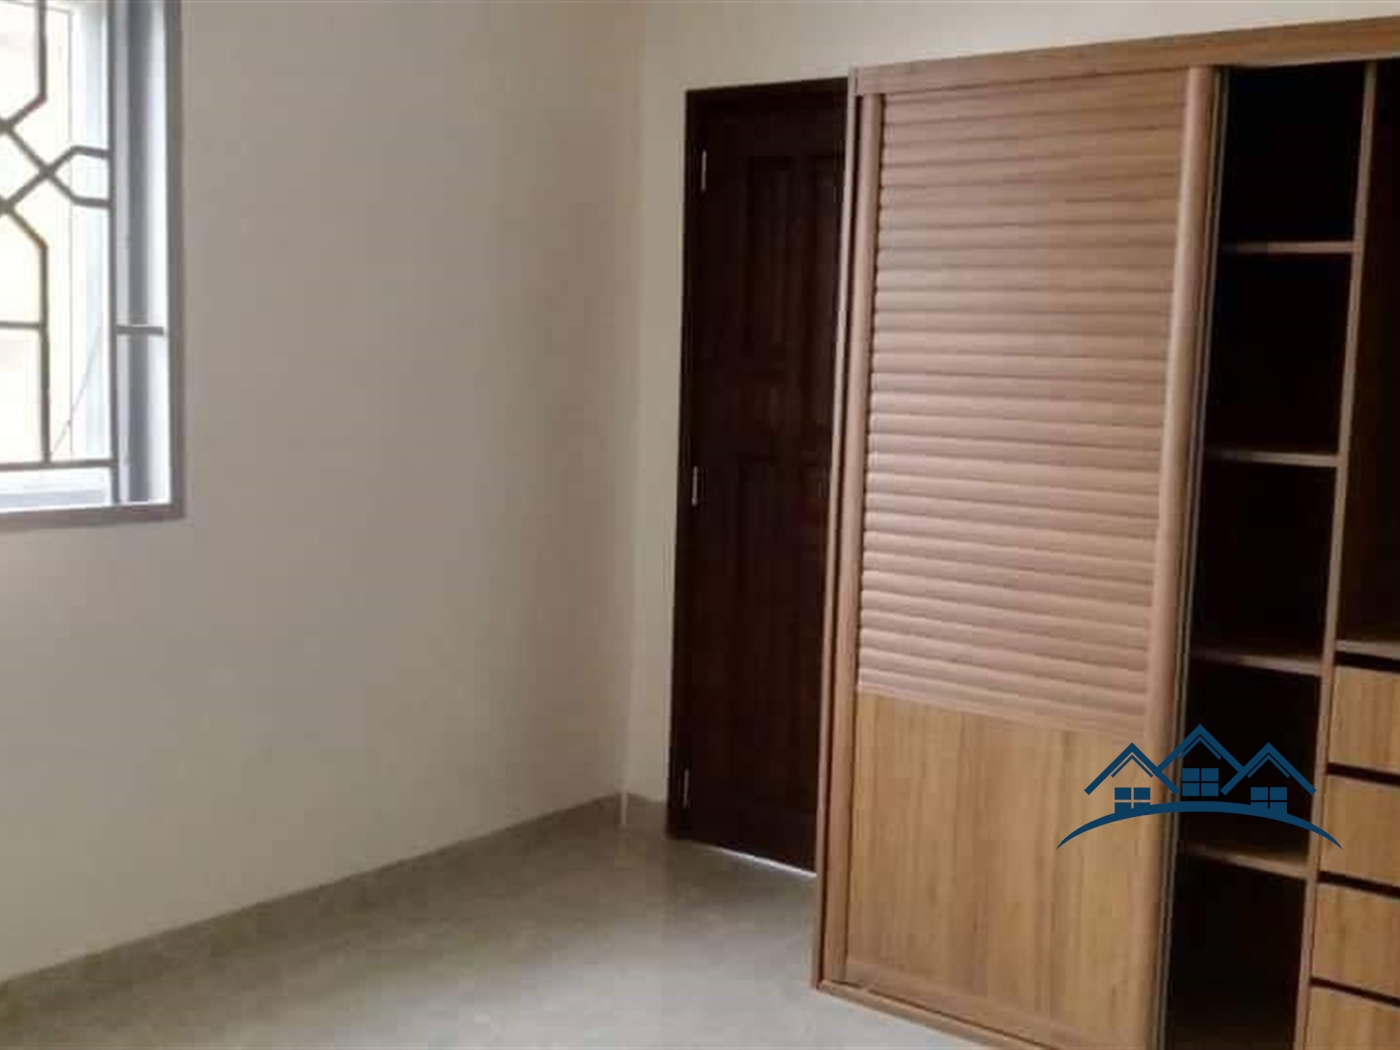 Apartment for sale in Mulago Kampala